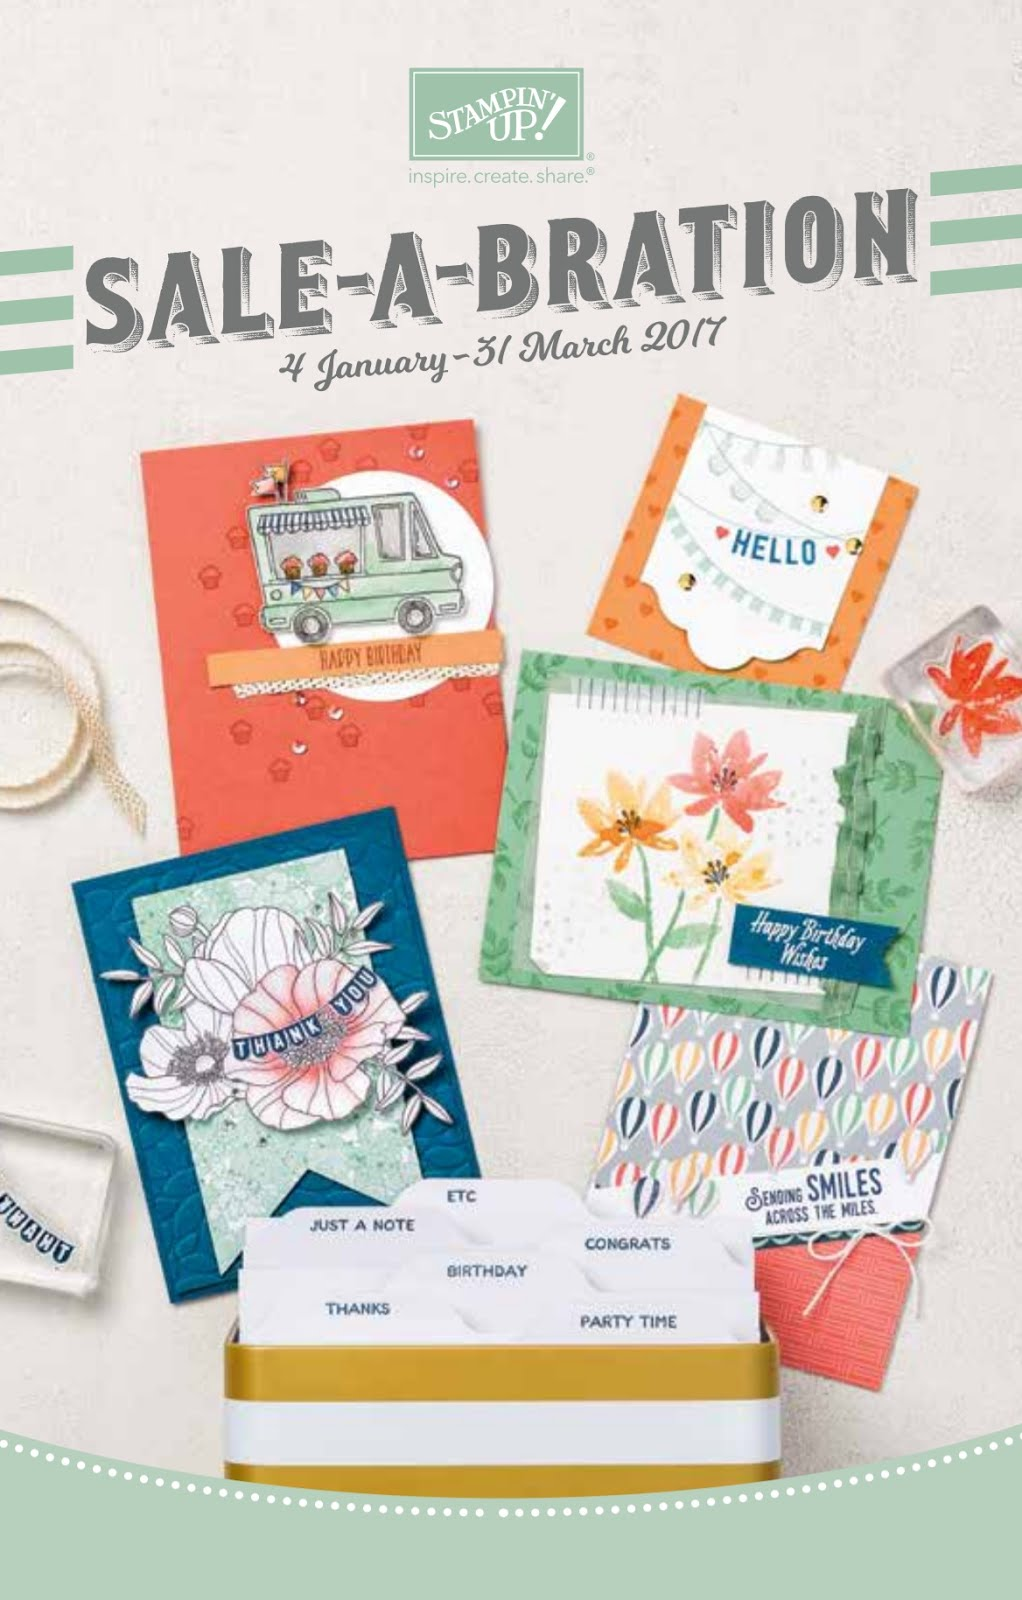 SALE A BRATION 2017 BROCHURE